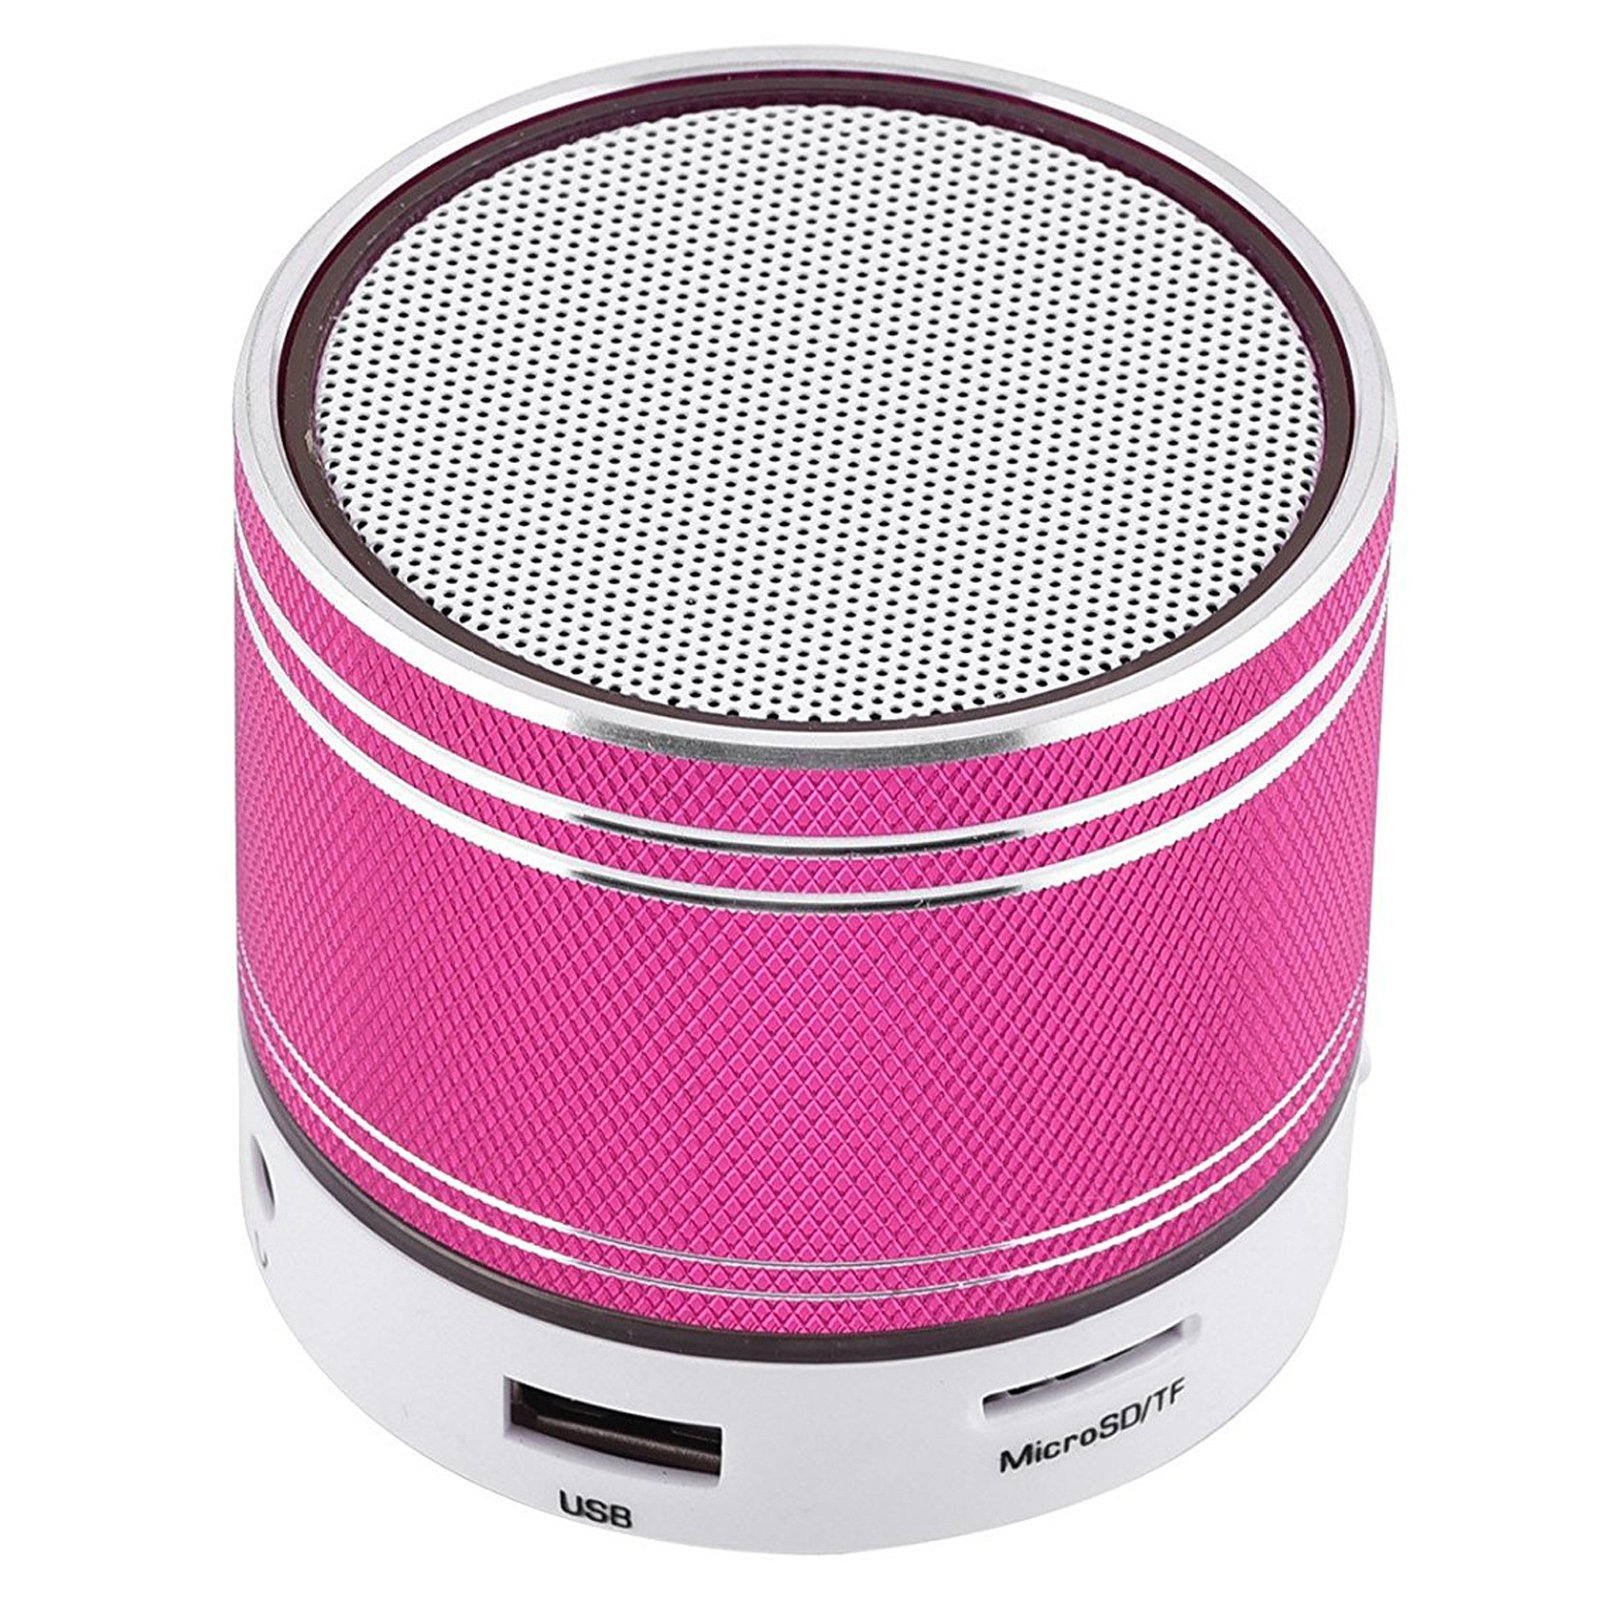 Small Bluetooth Speaker Universal Stereo Sound Speaker Wireless Handsfree Call Desktop Speaker for Android Samsung Galaxy S9 S8 Plus S7 S6 S5 iPhone X 8 7 6 6S 5S 5C Nexus Motorola Laptops PC Hotpink